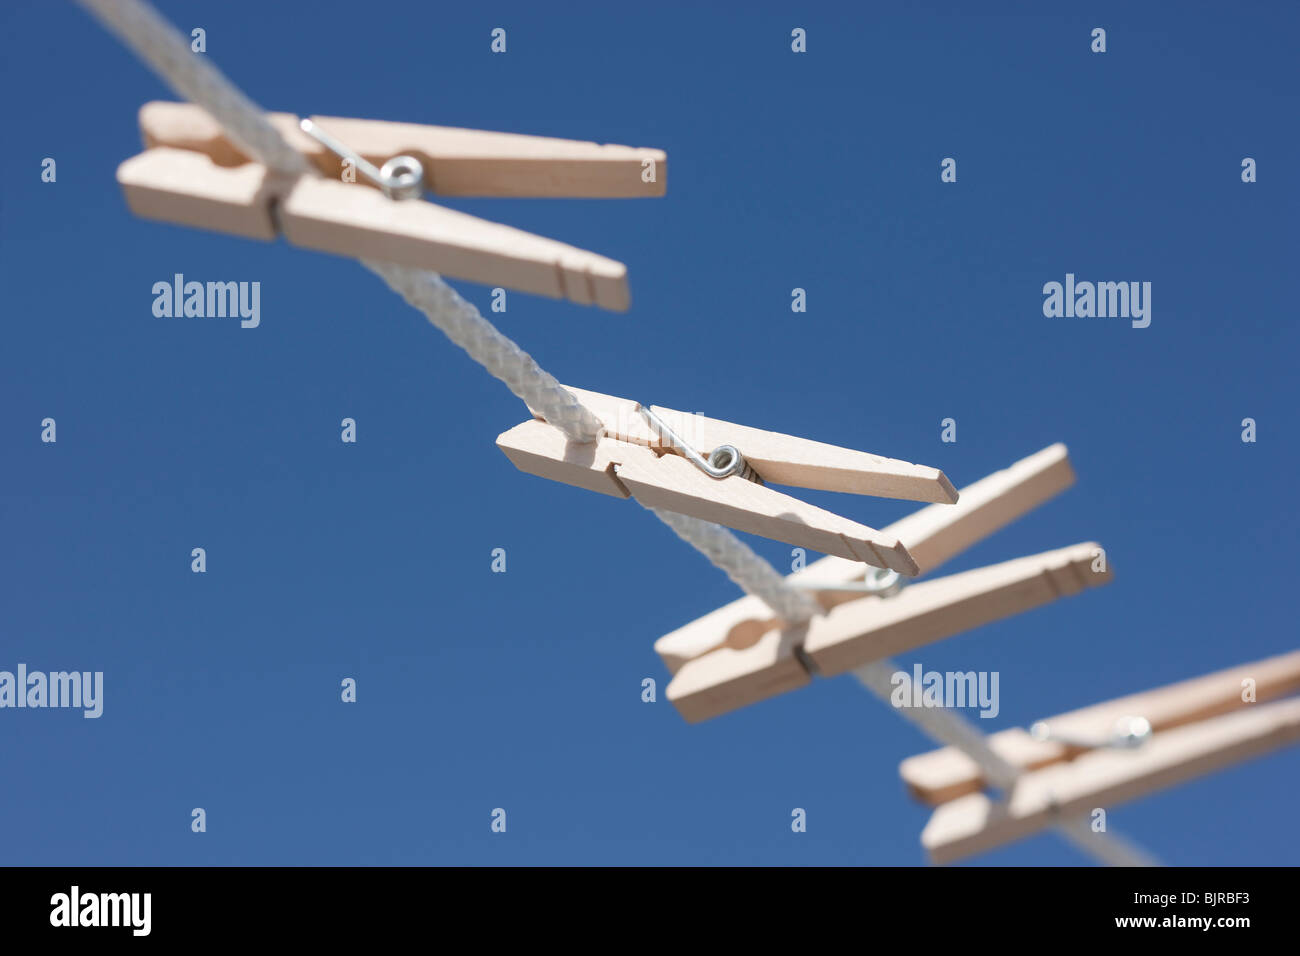 Clothes pegs hanging on washing line - Stock Image